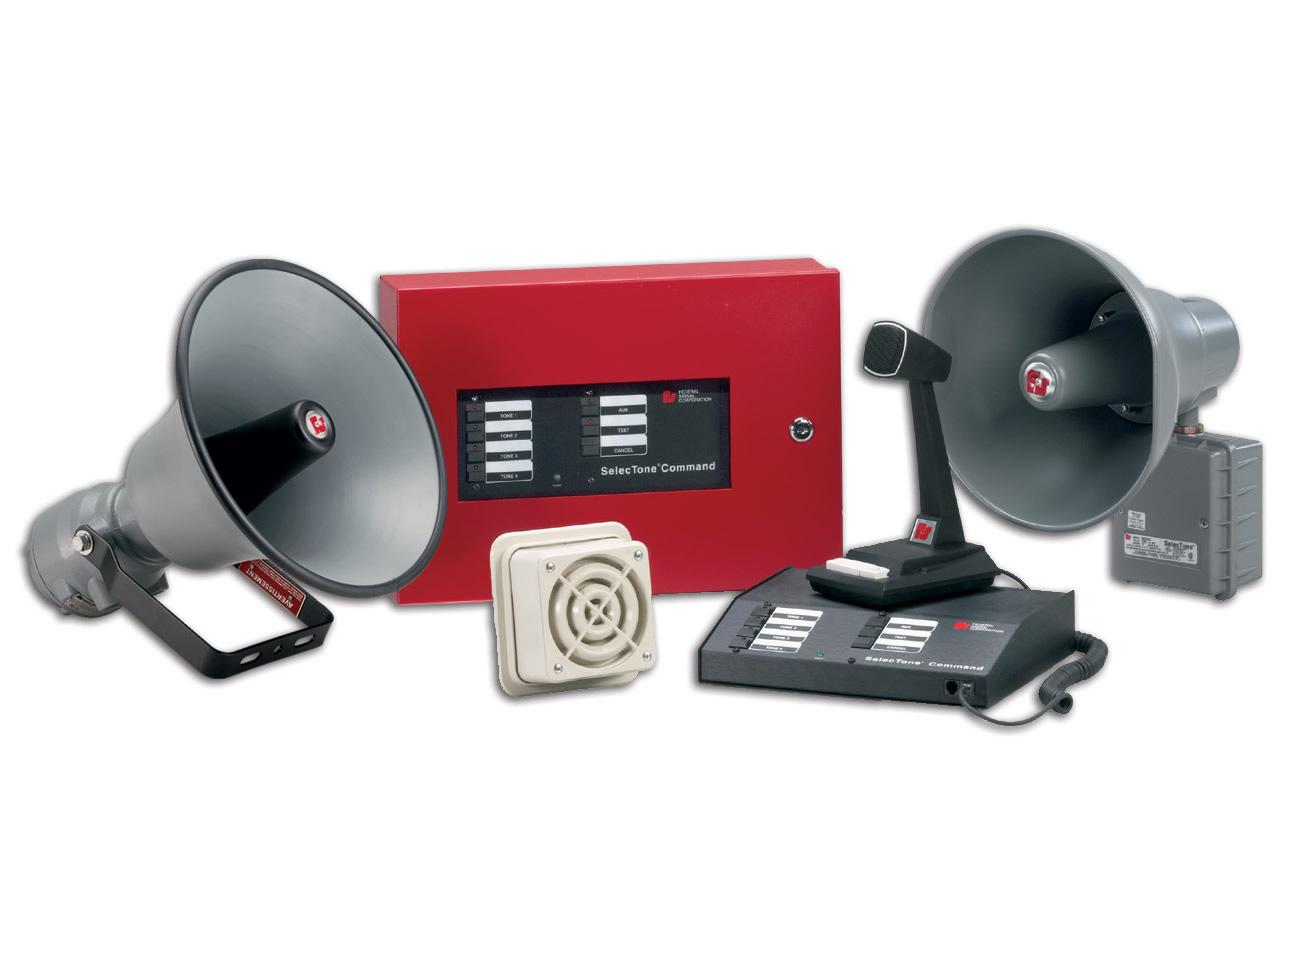 Overview Selectone 174 Plant Wide Warning And Industrial Pa